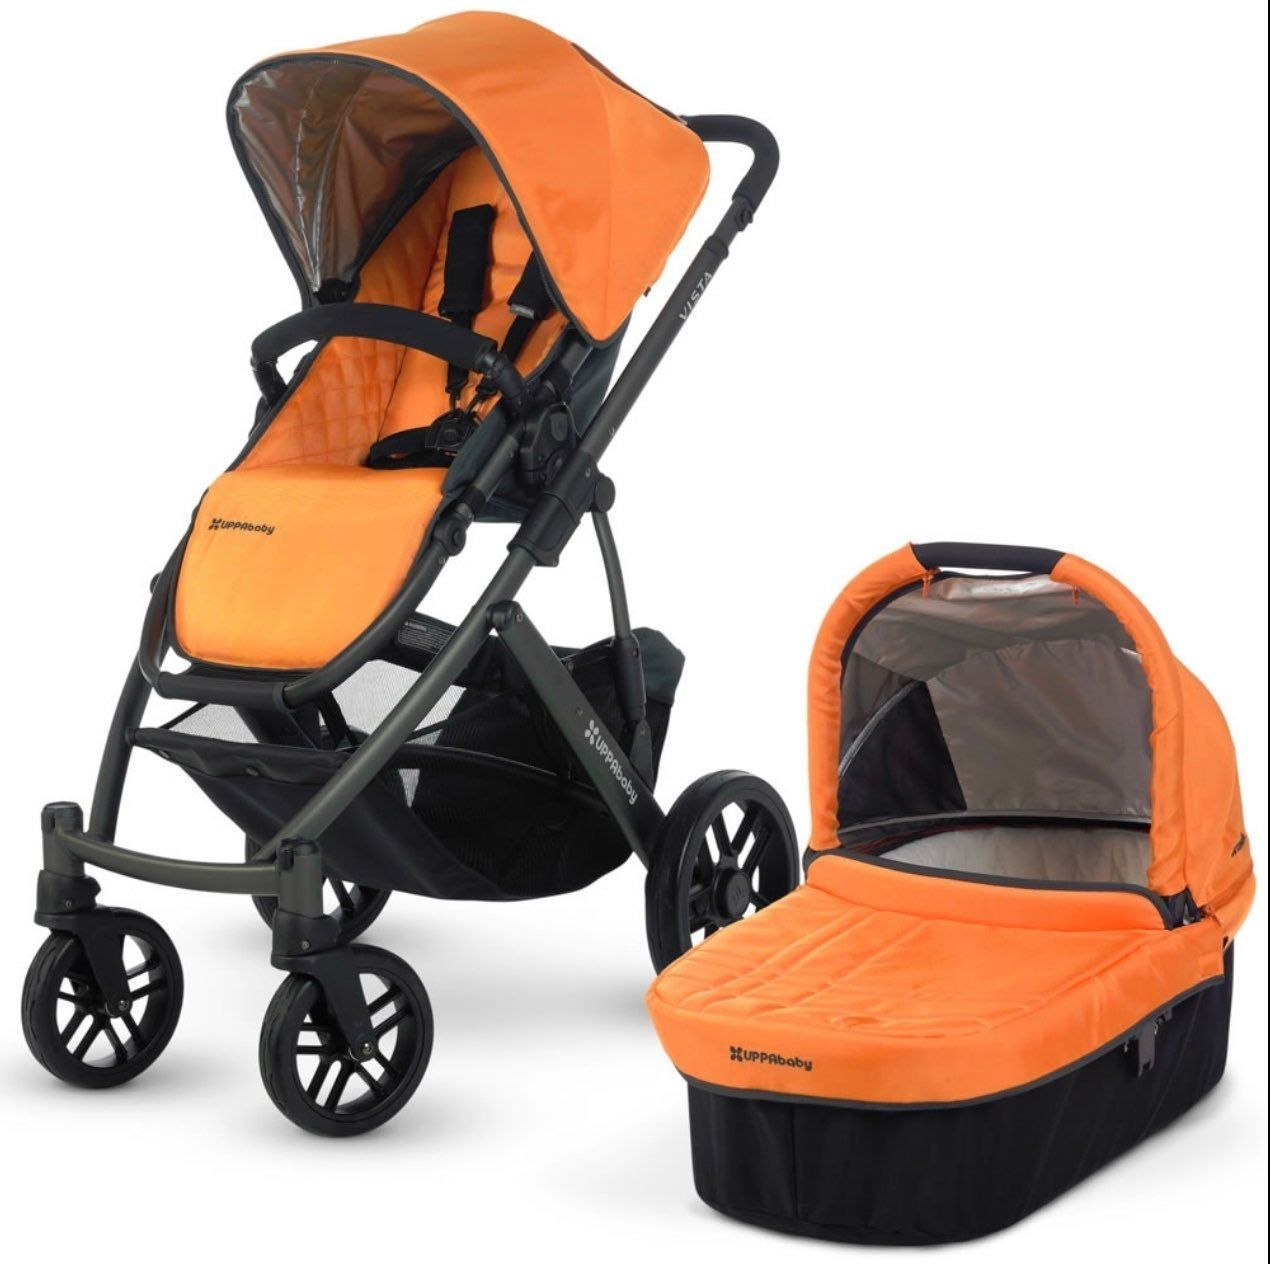 Brand new in box Uppababy Vista stroller (more photos by